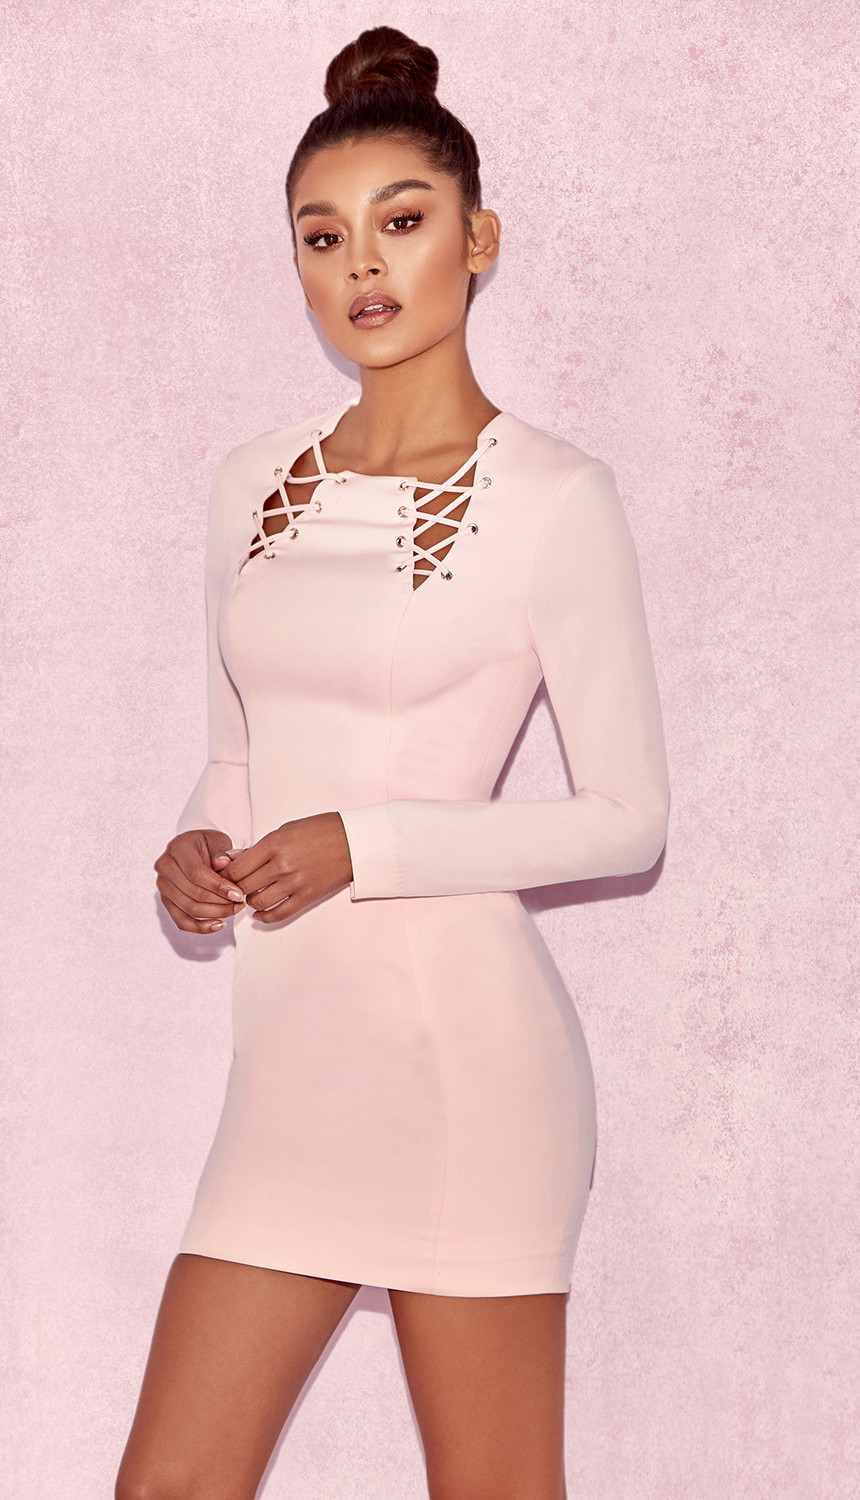 HOUSE OF CB 'RAINA' BABY PINK LACE UP DRESS